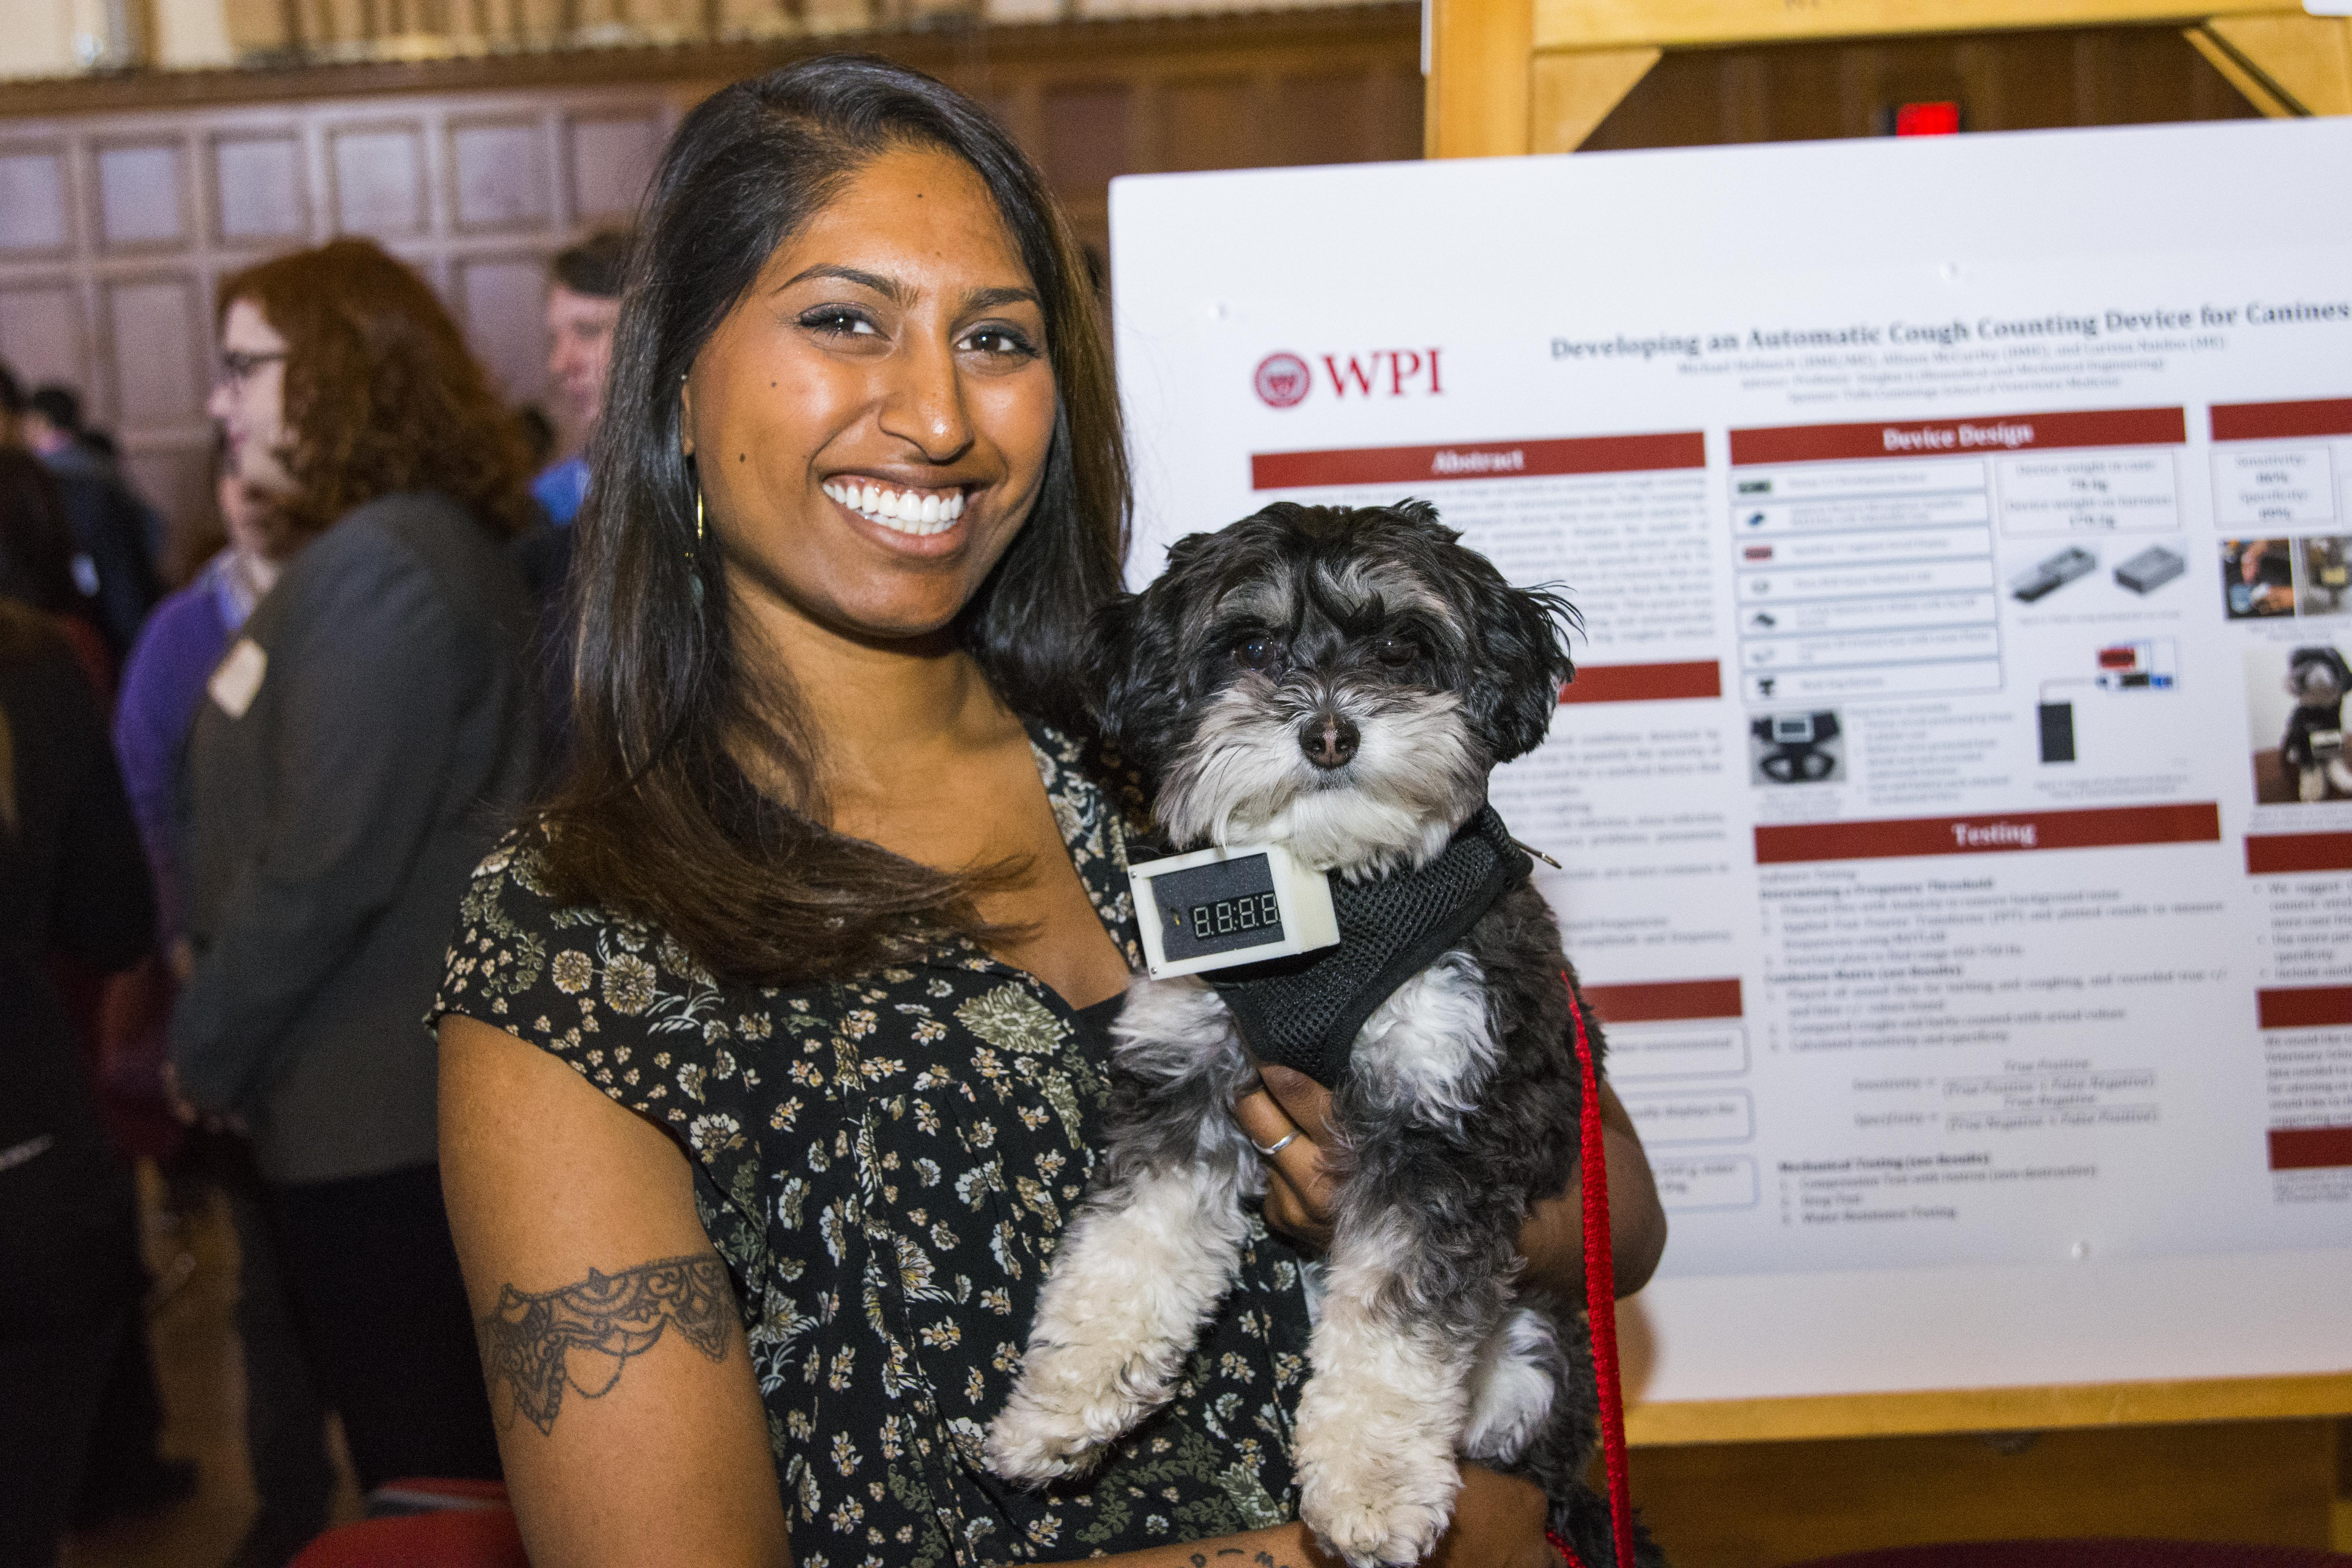 A student holds up her puppy with her team's poster work in the background. She's wearing a black patterned shirt, has a tattoo on her arm, and is smiling.